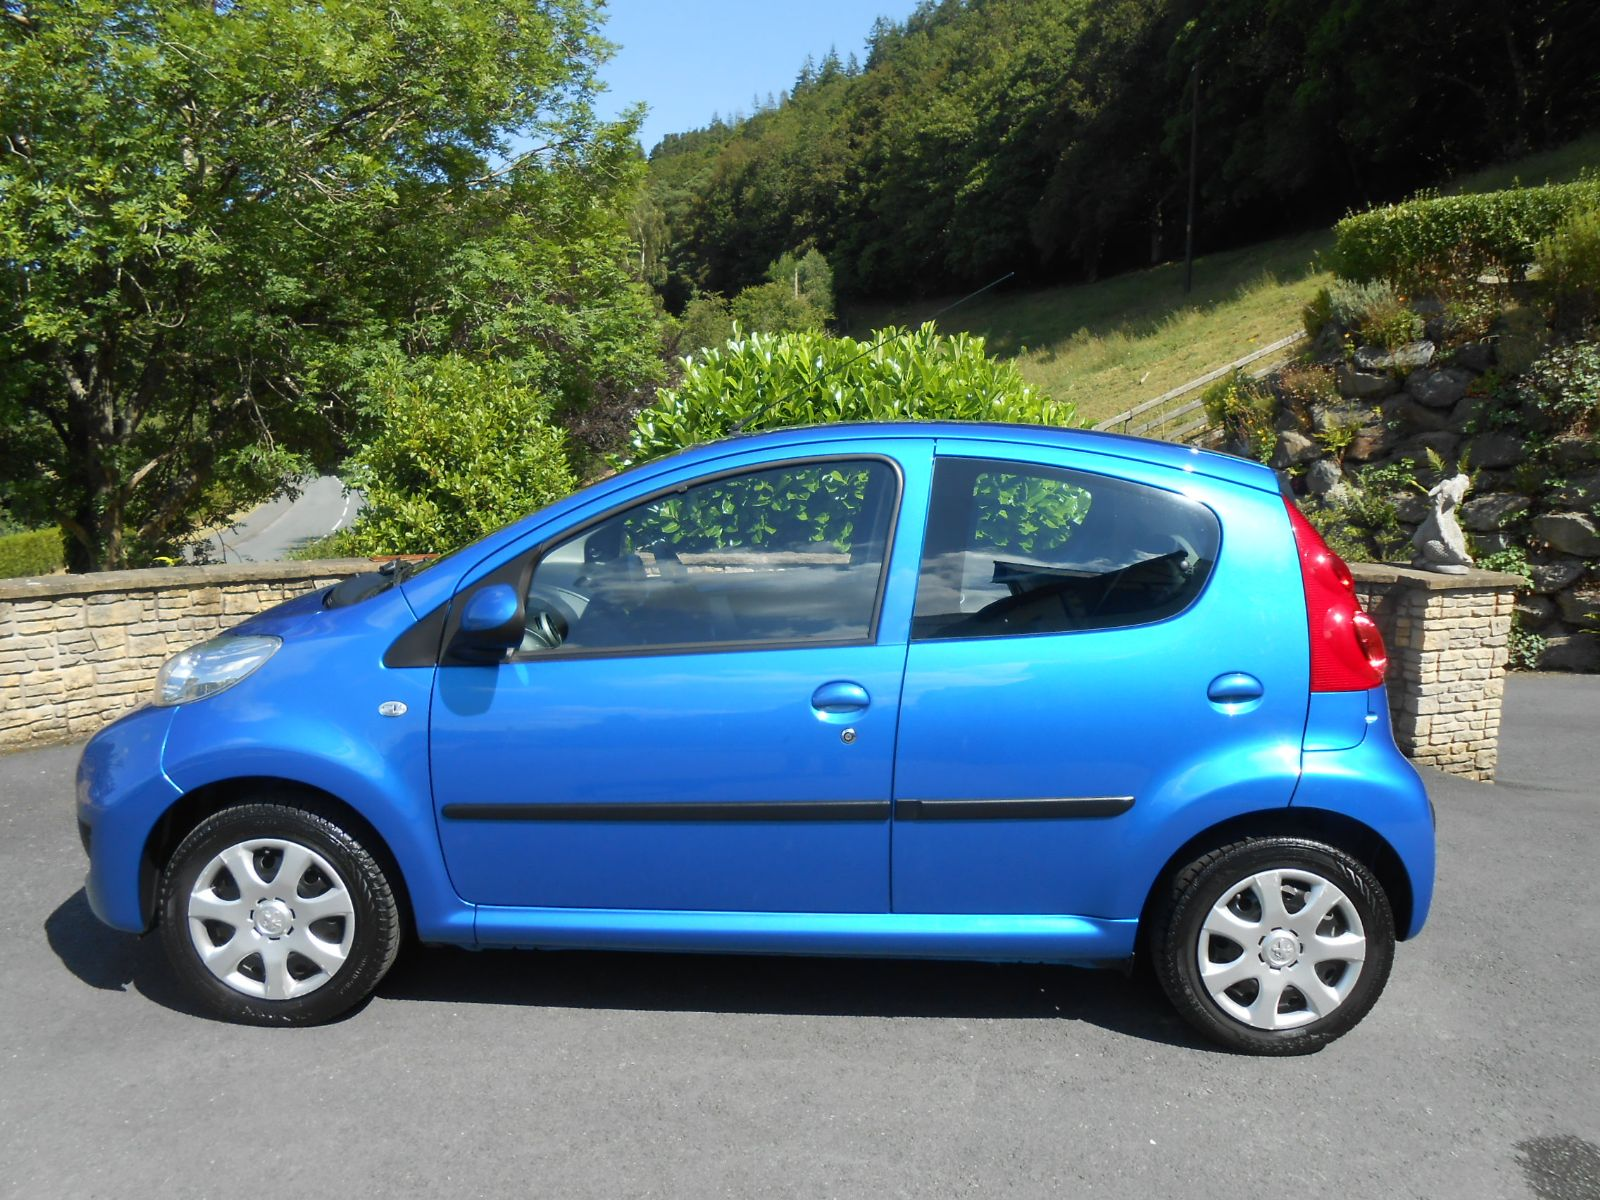 peugeot 107 1.0 urban 5 door car for sale llanidloes powys mid